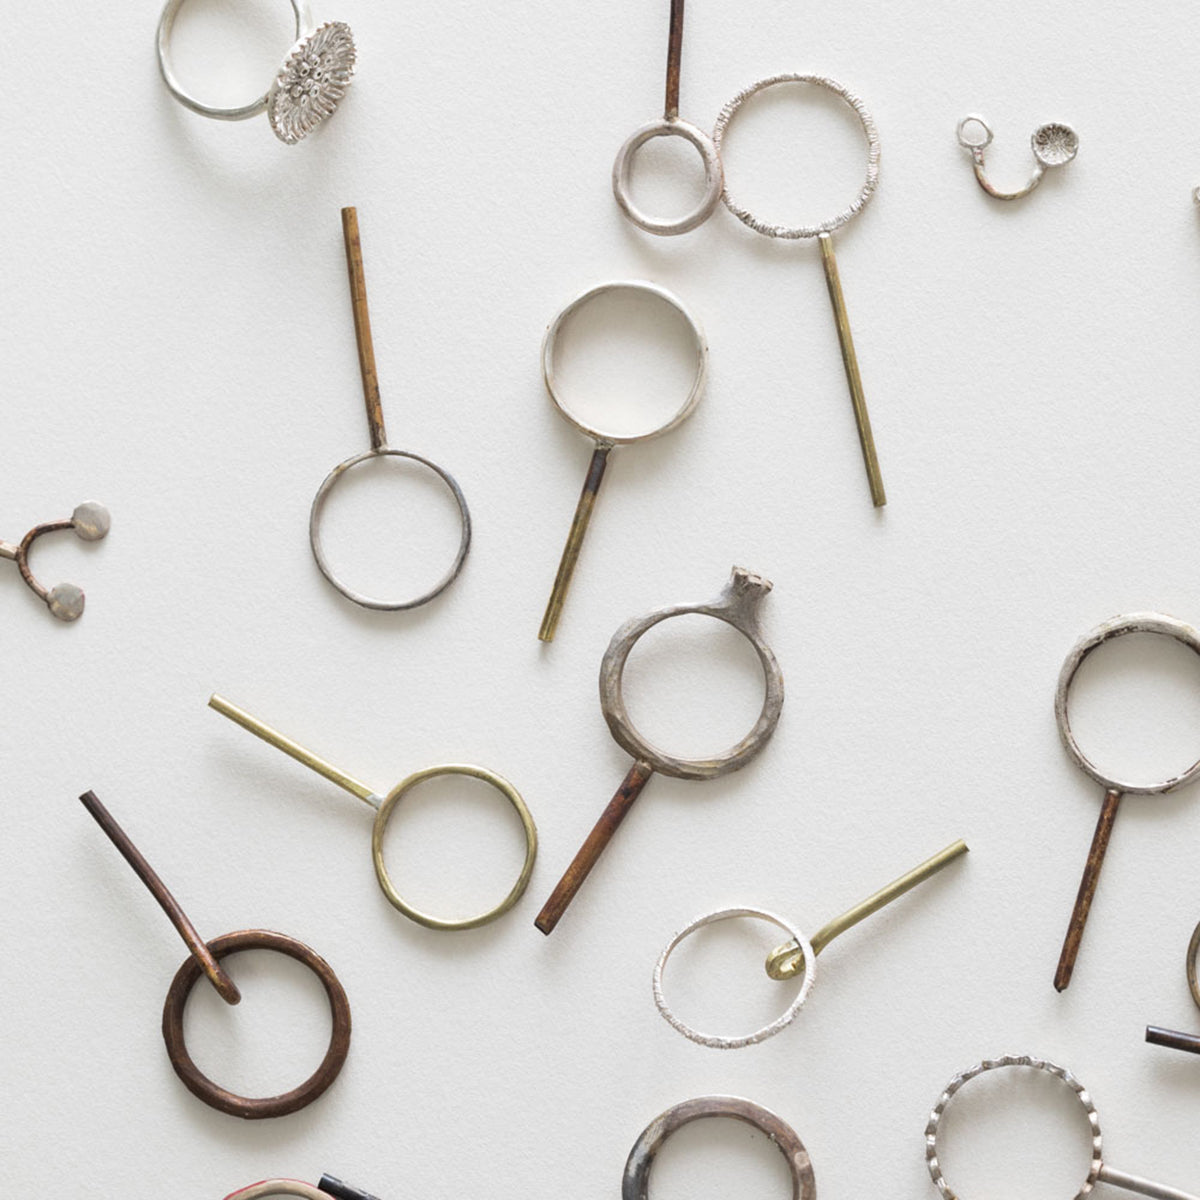 Ring Tools